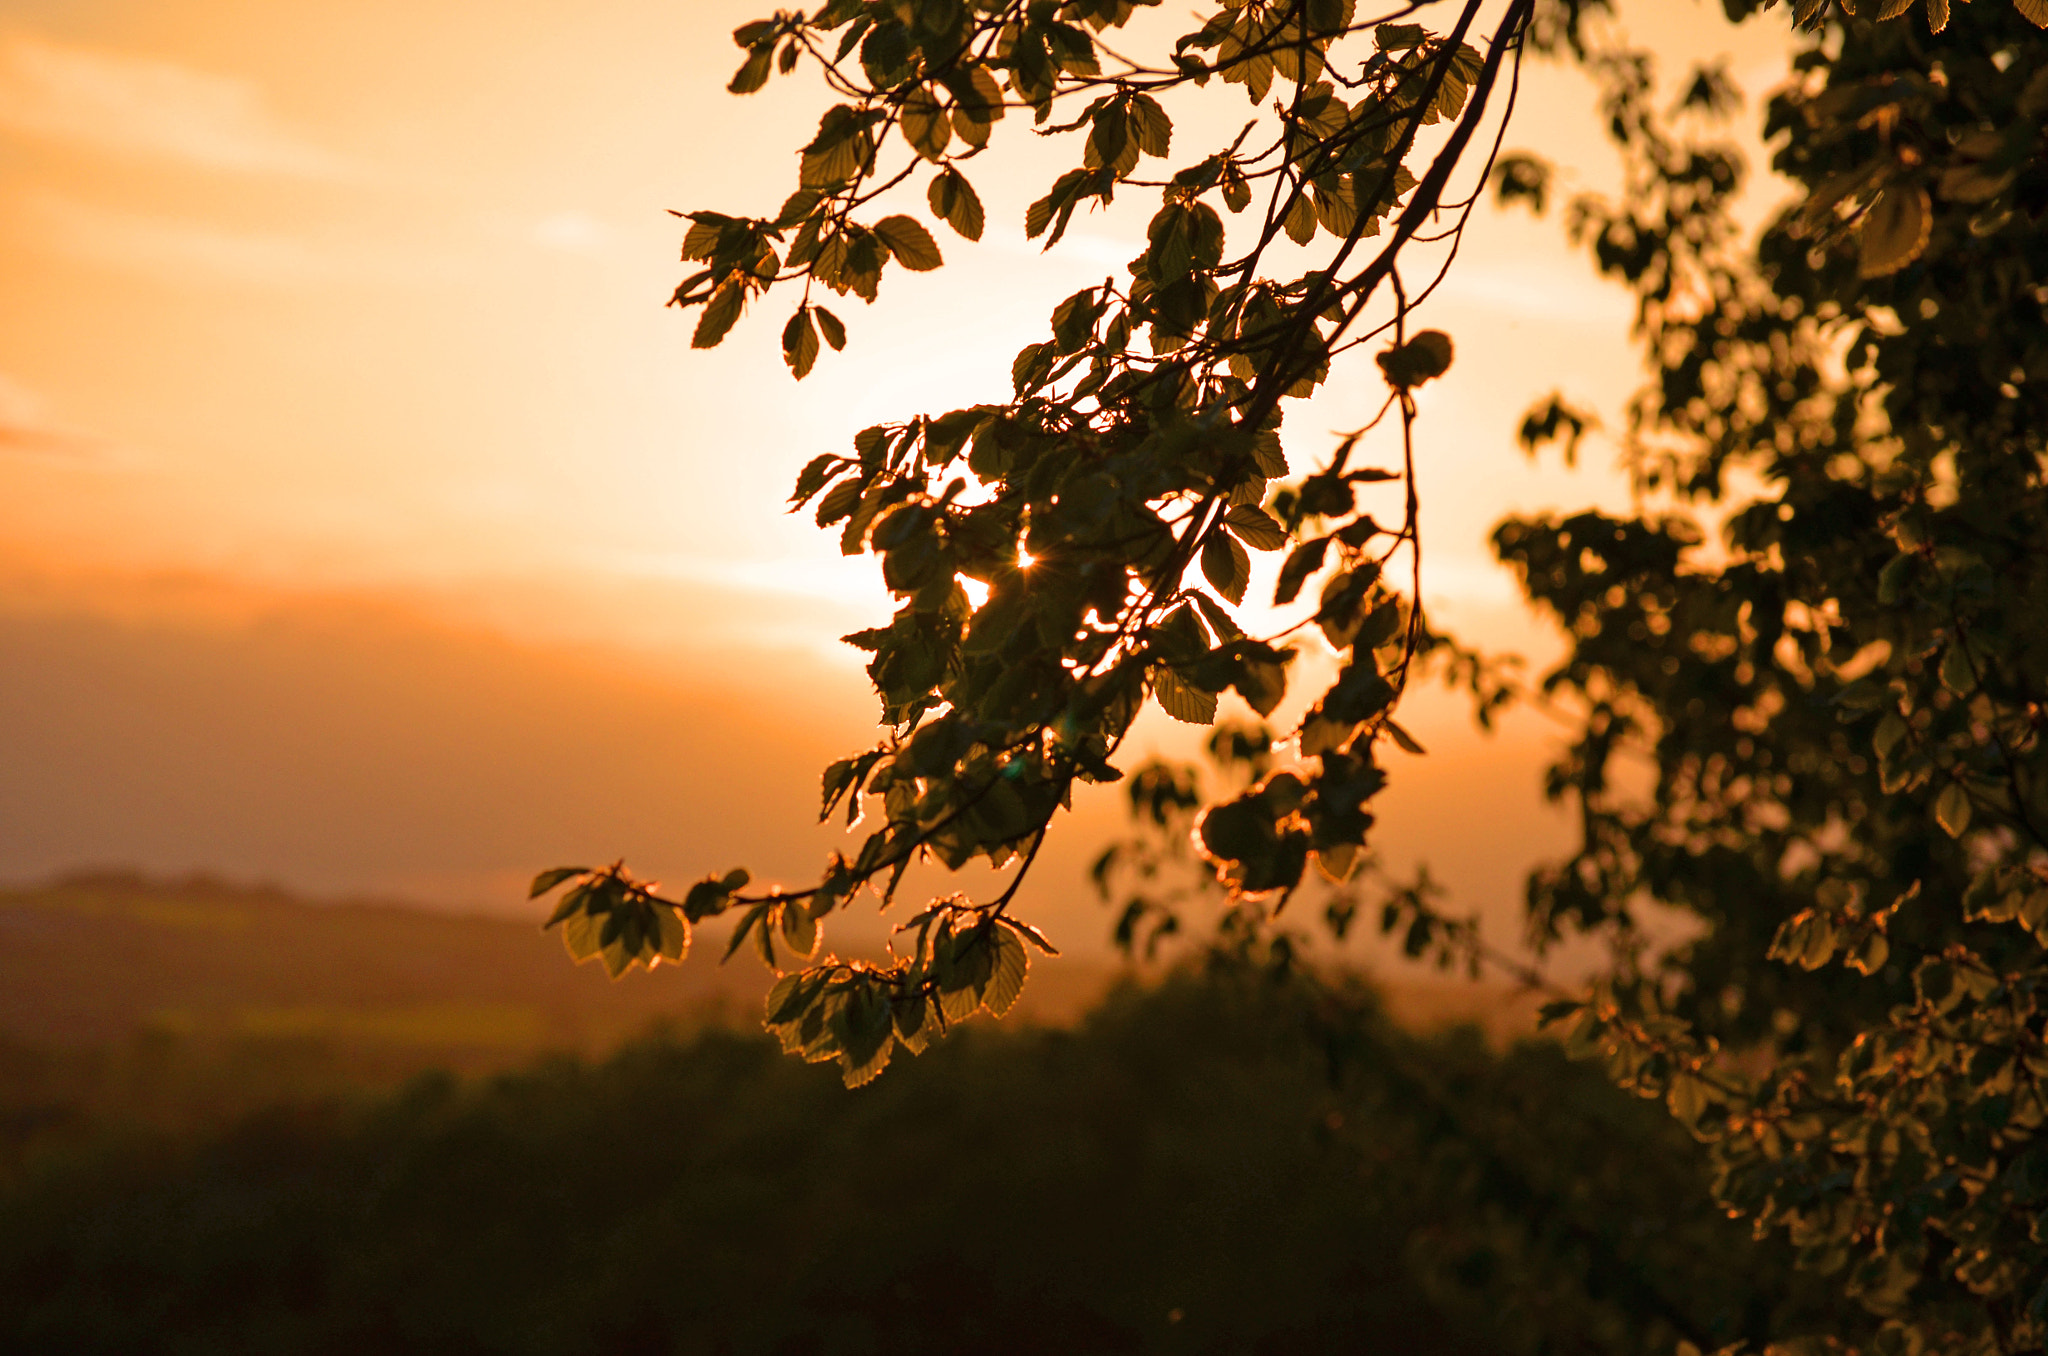 Photograph Sunset by Youngman Images on 500px